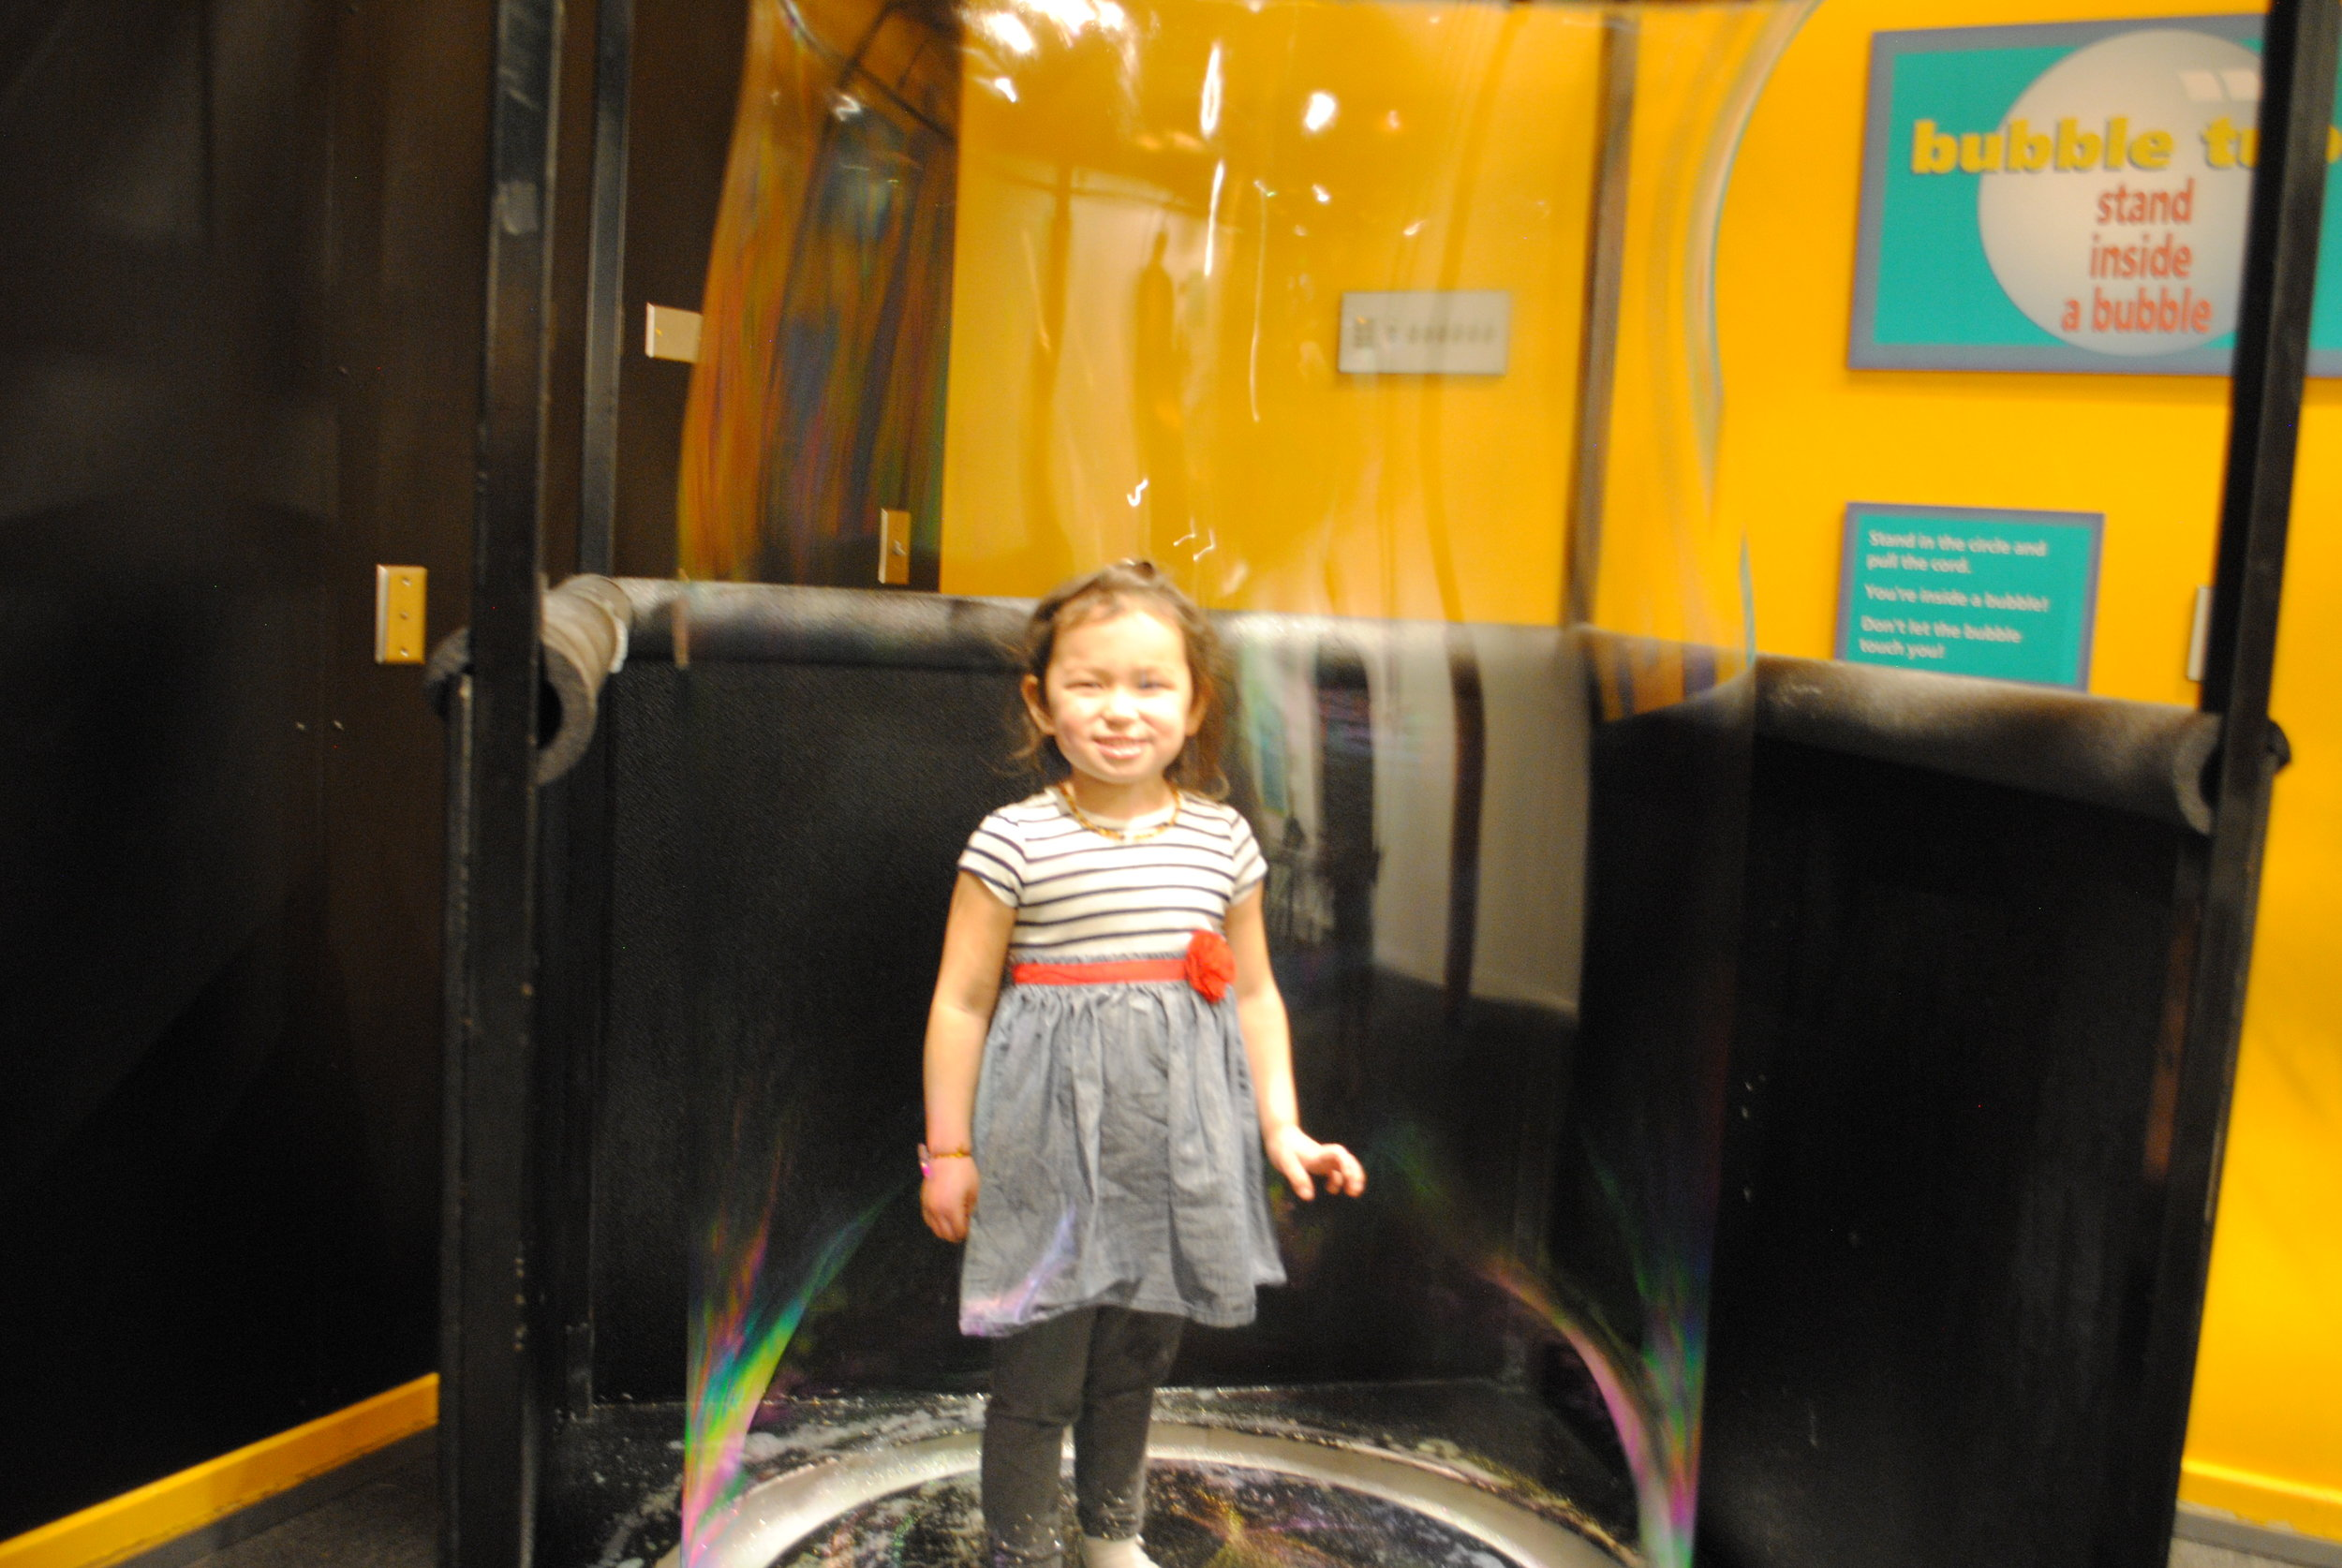 The Bubble-ology Room at ScienceWorks